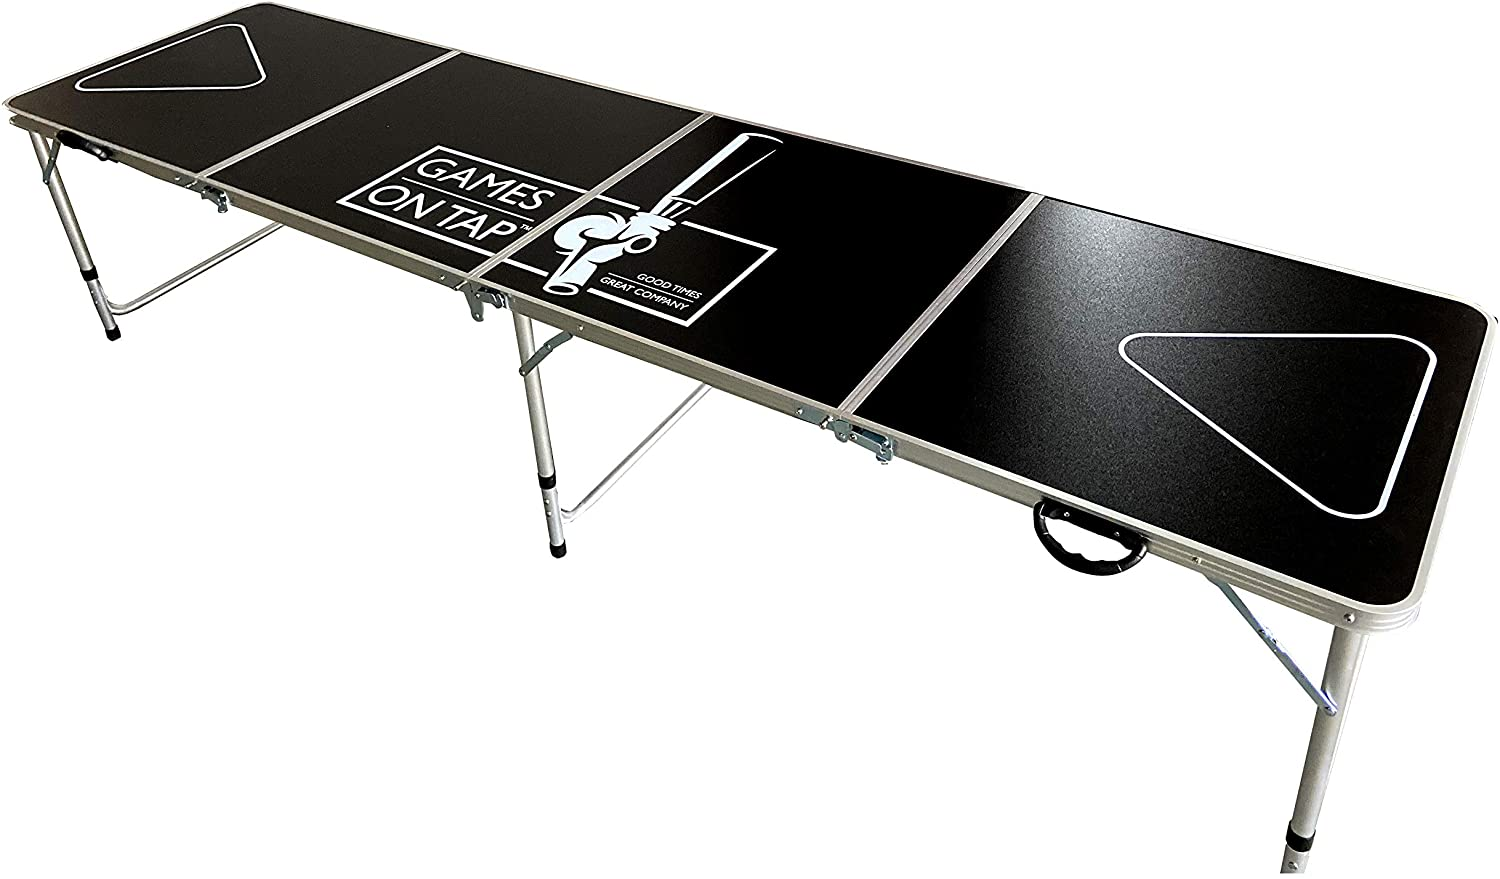 Games on Tap Foldable Beer Pong Table